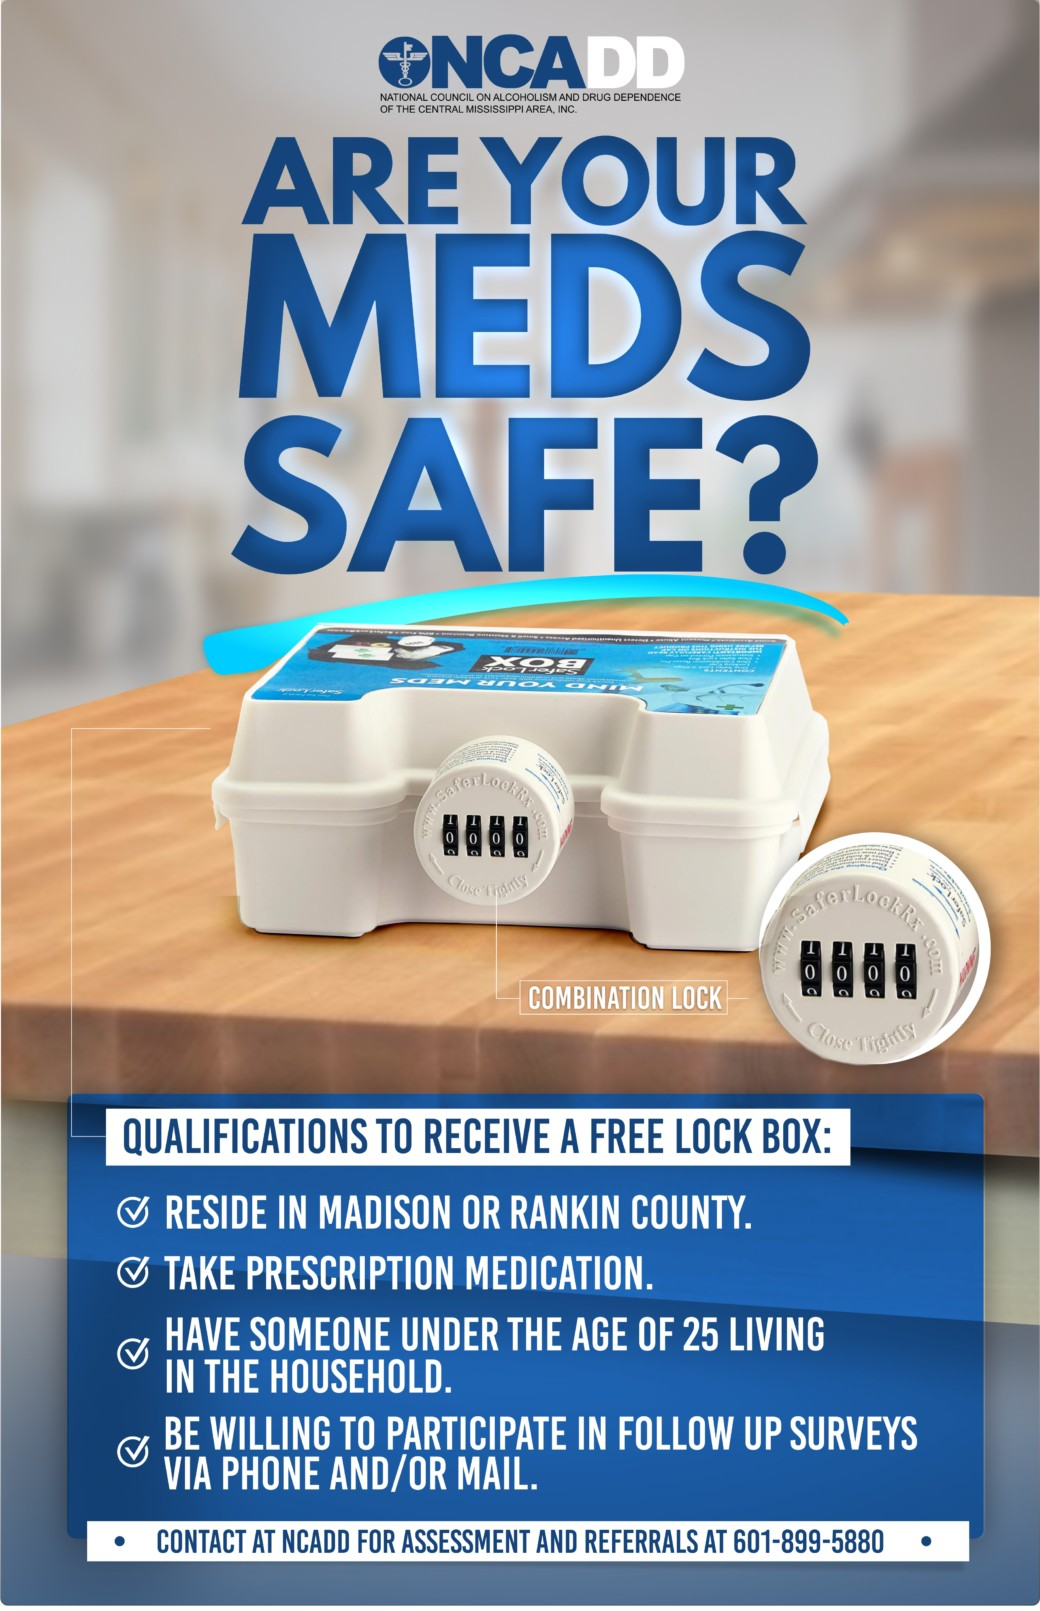 Are you MEDS safe?